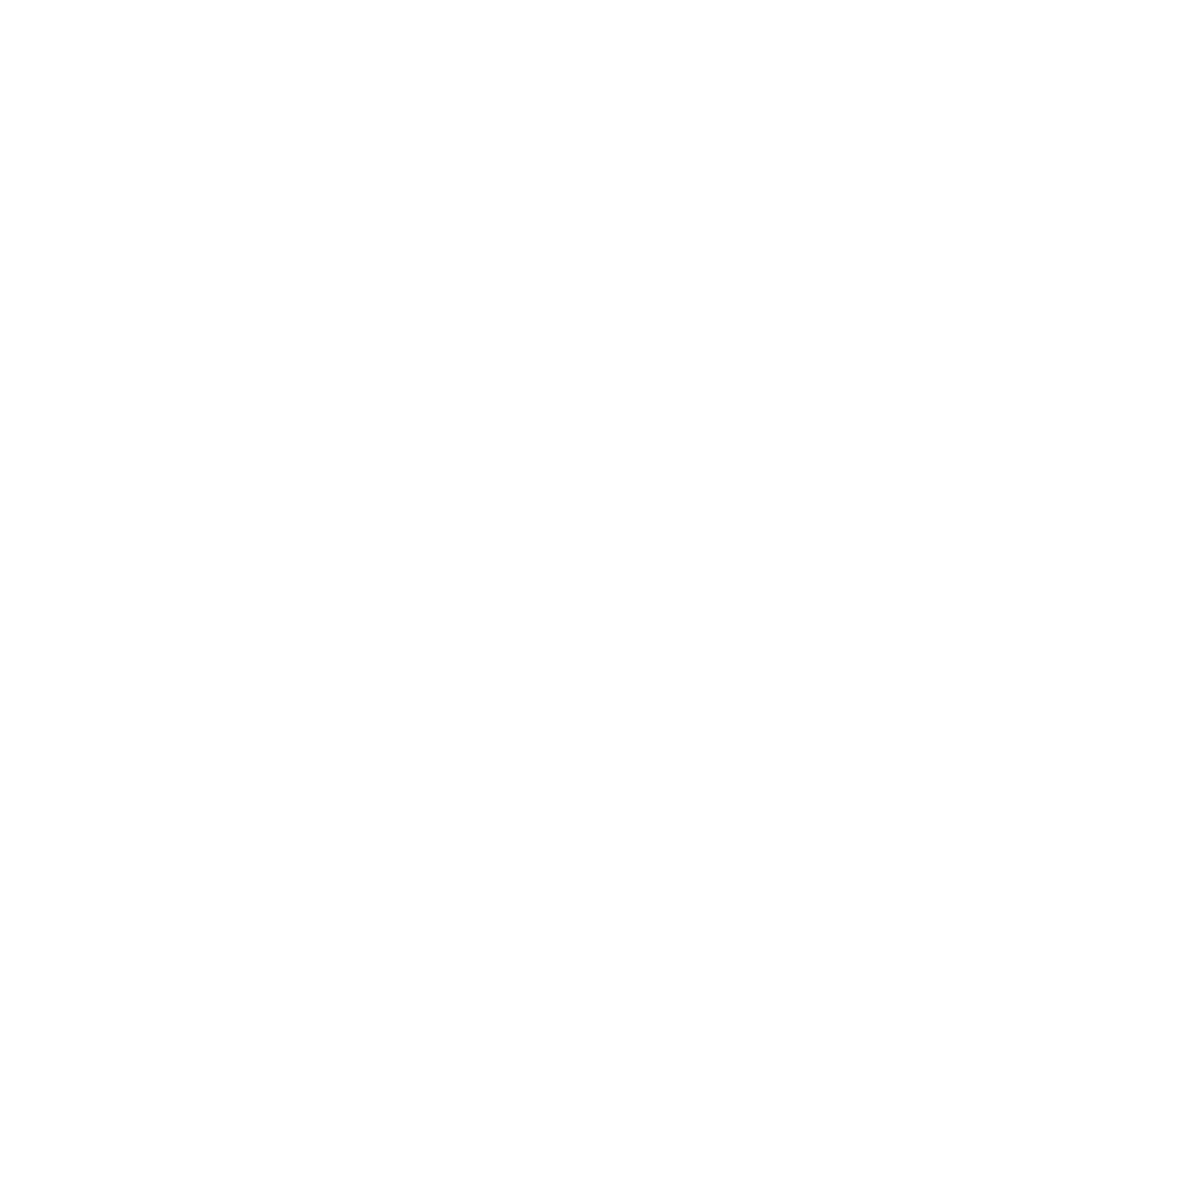 PinpointBPS® | Helping your lab make smarter operational decisions, faster